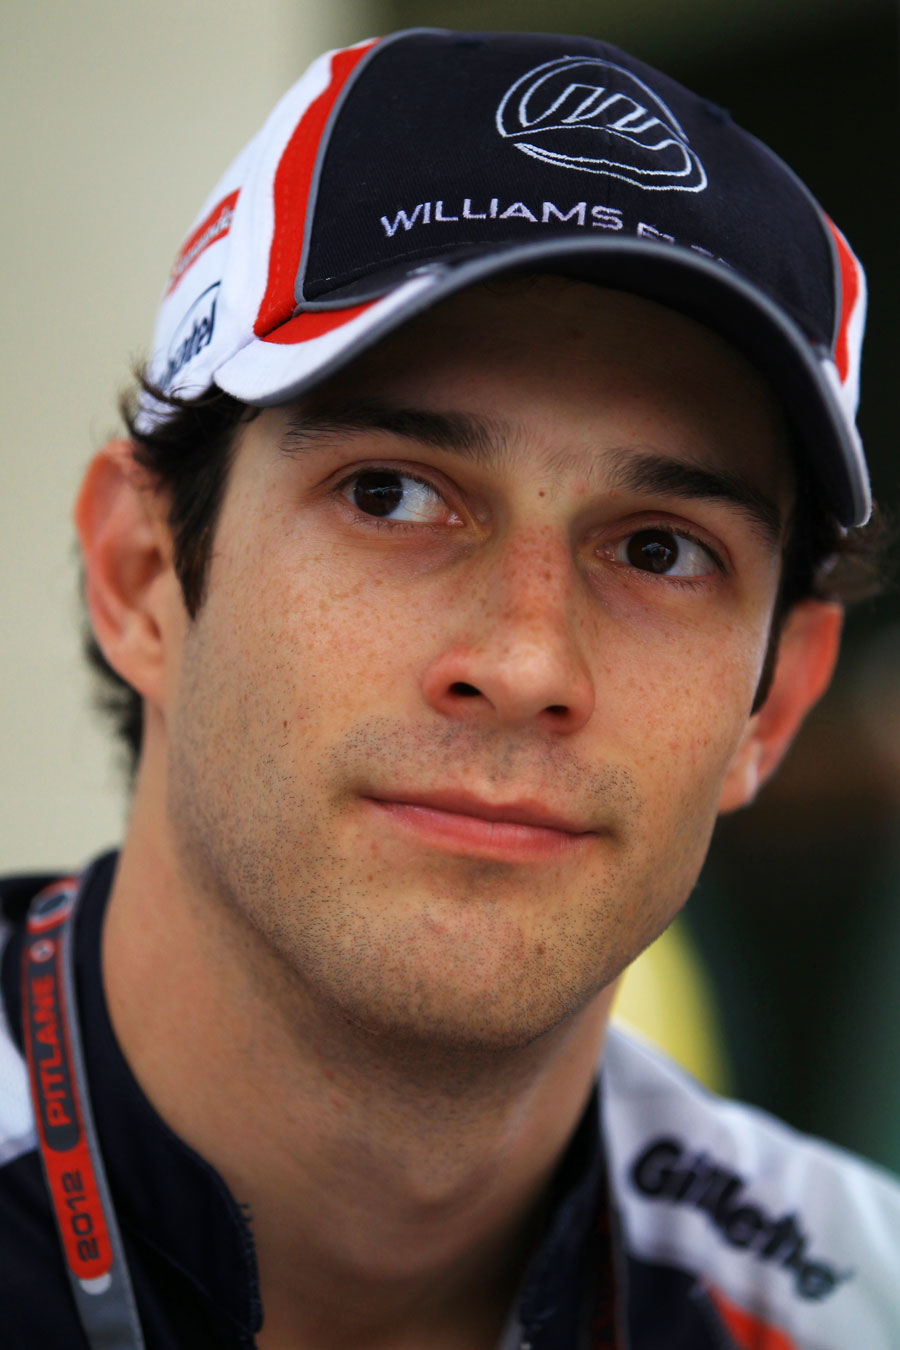 Bruno Senna talks to the press after qualifying